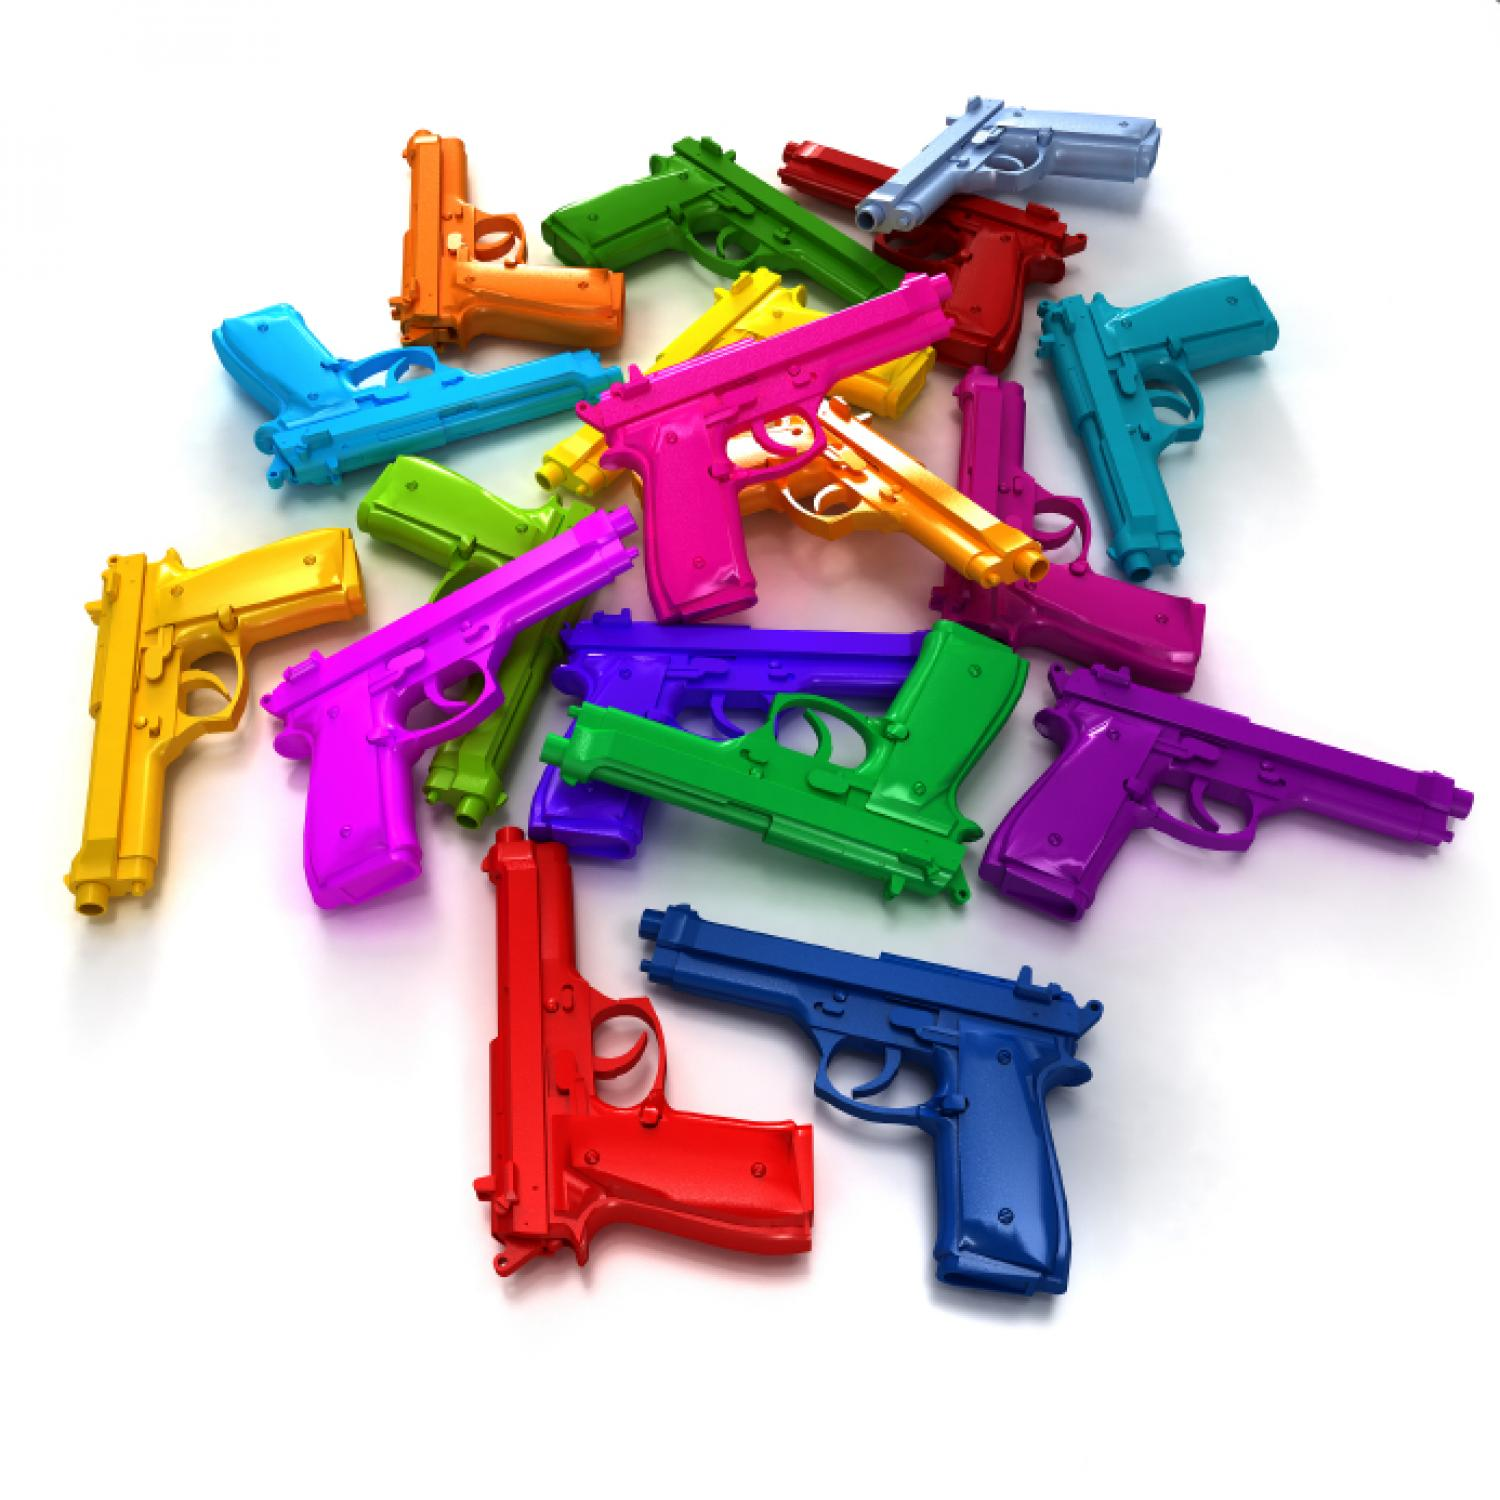 Toys For All : Are parents banning toy guns parenting